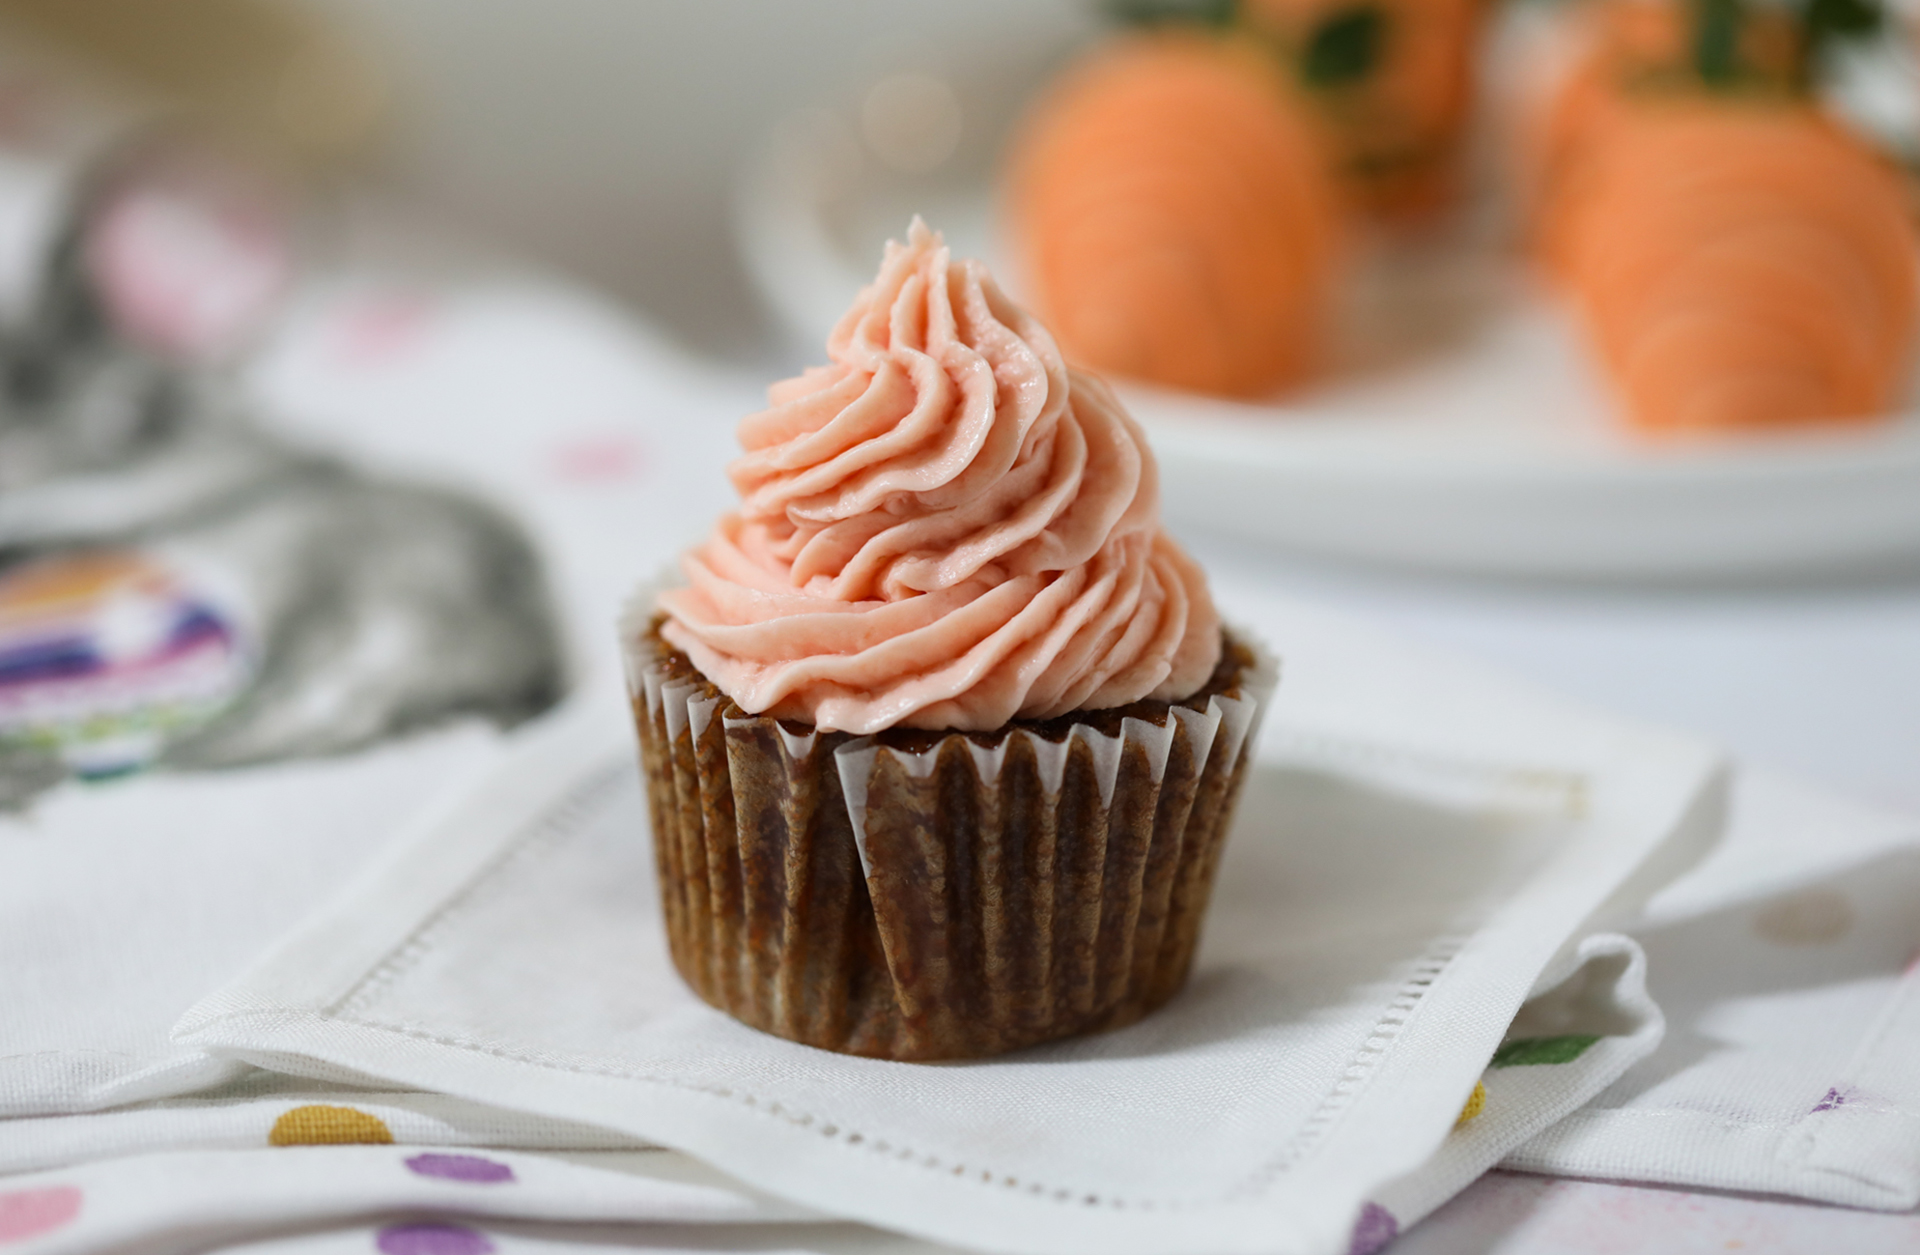 Carrot Cake Cupcake With Orange Frosting